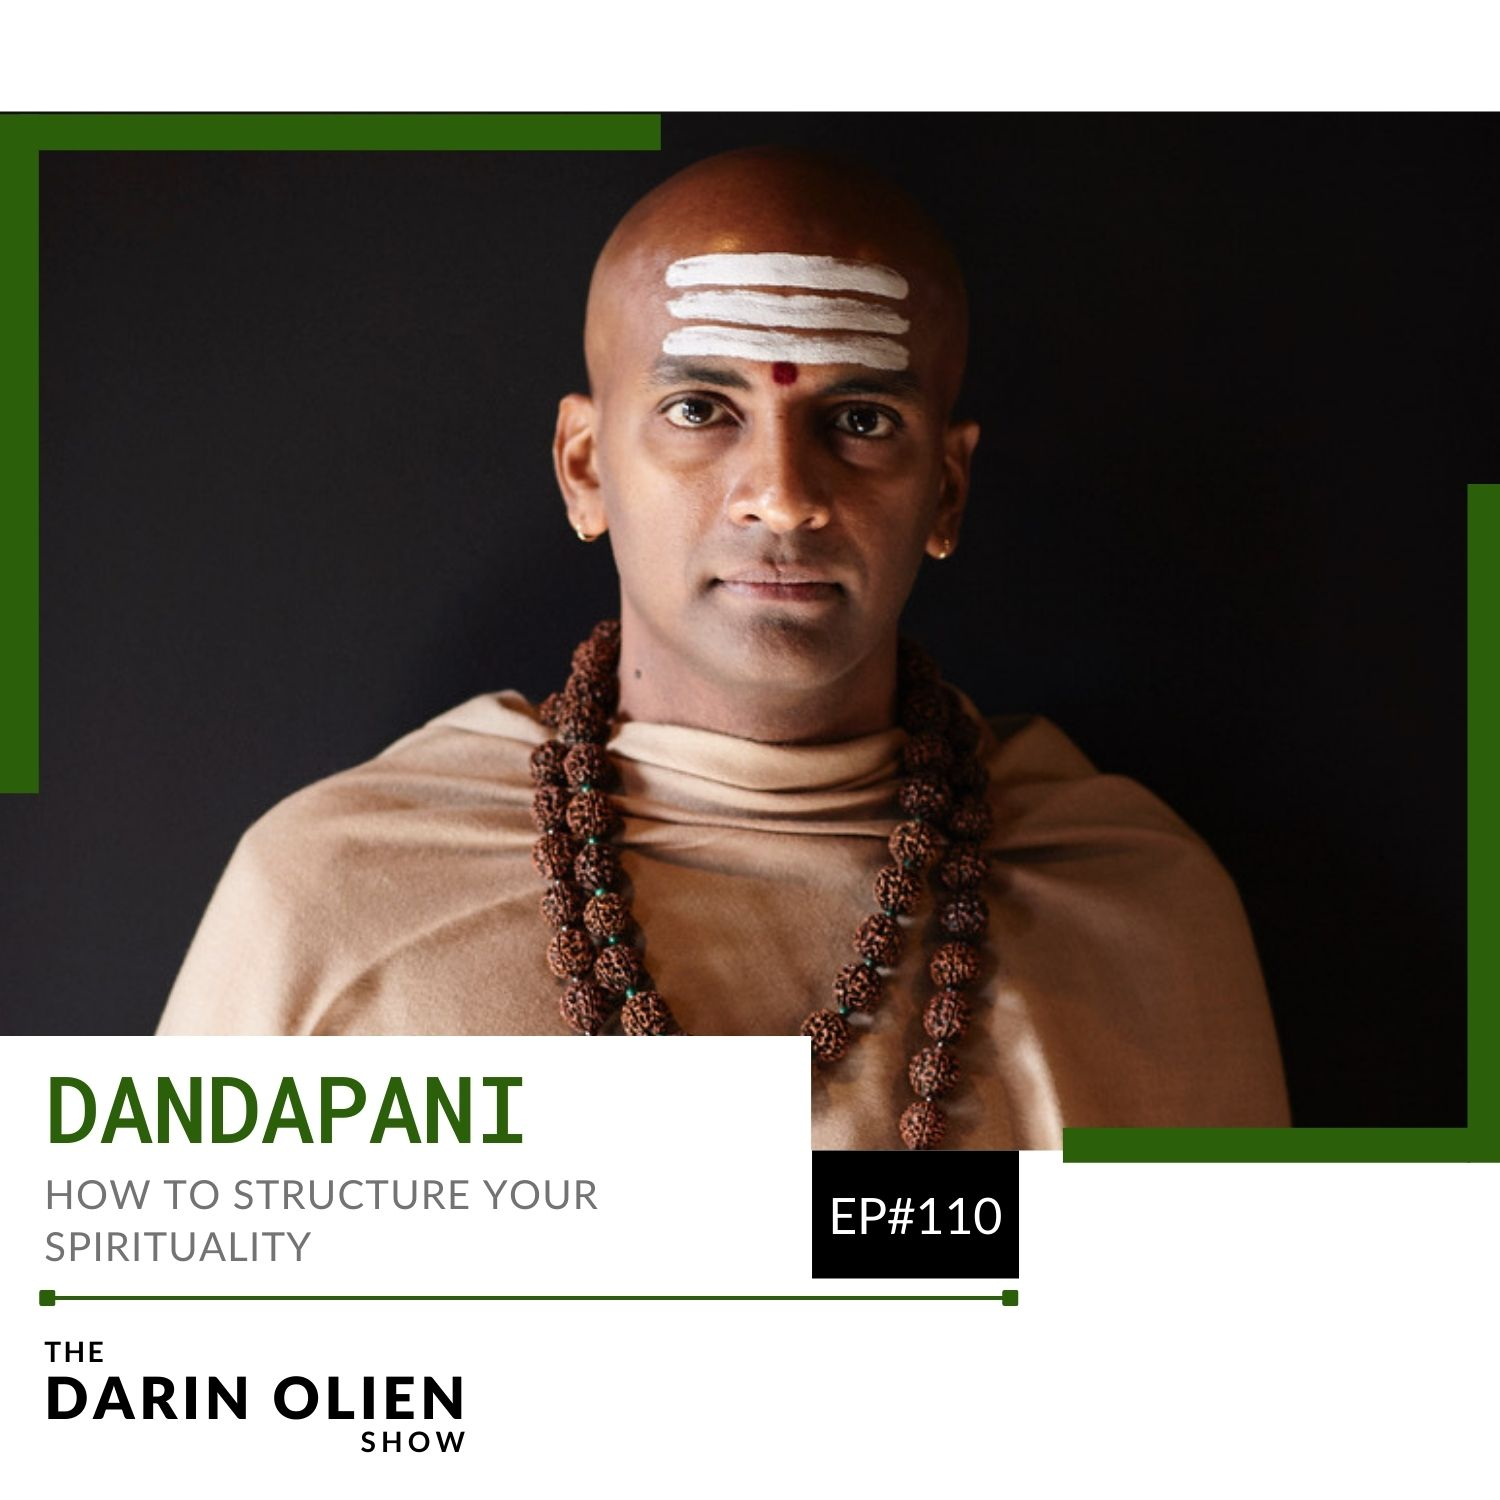 #110 How to Structure Your Spirituality   Dandapani